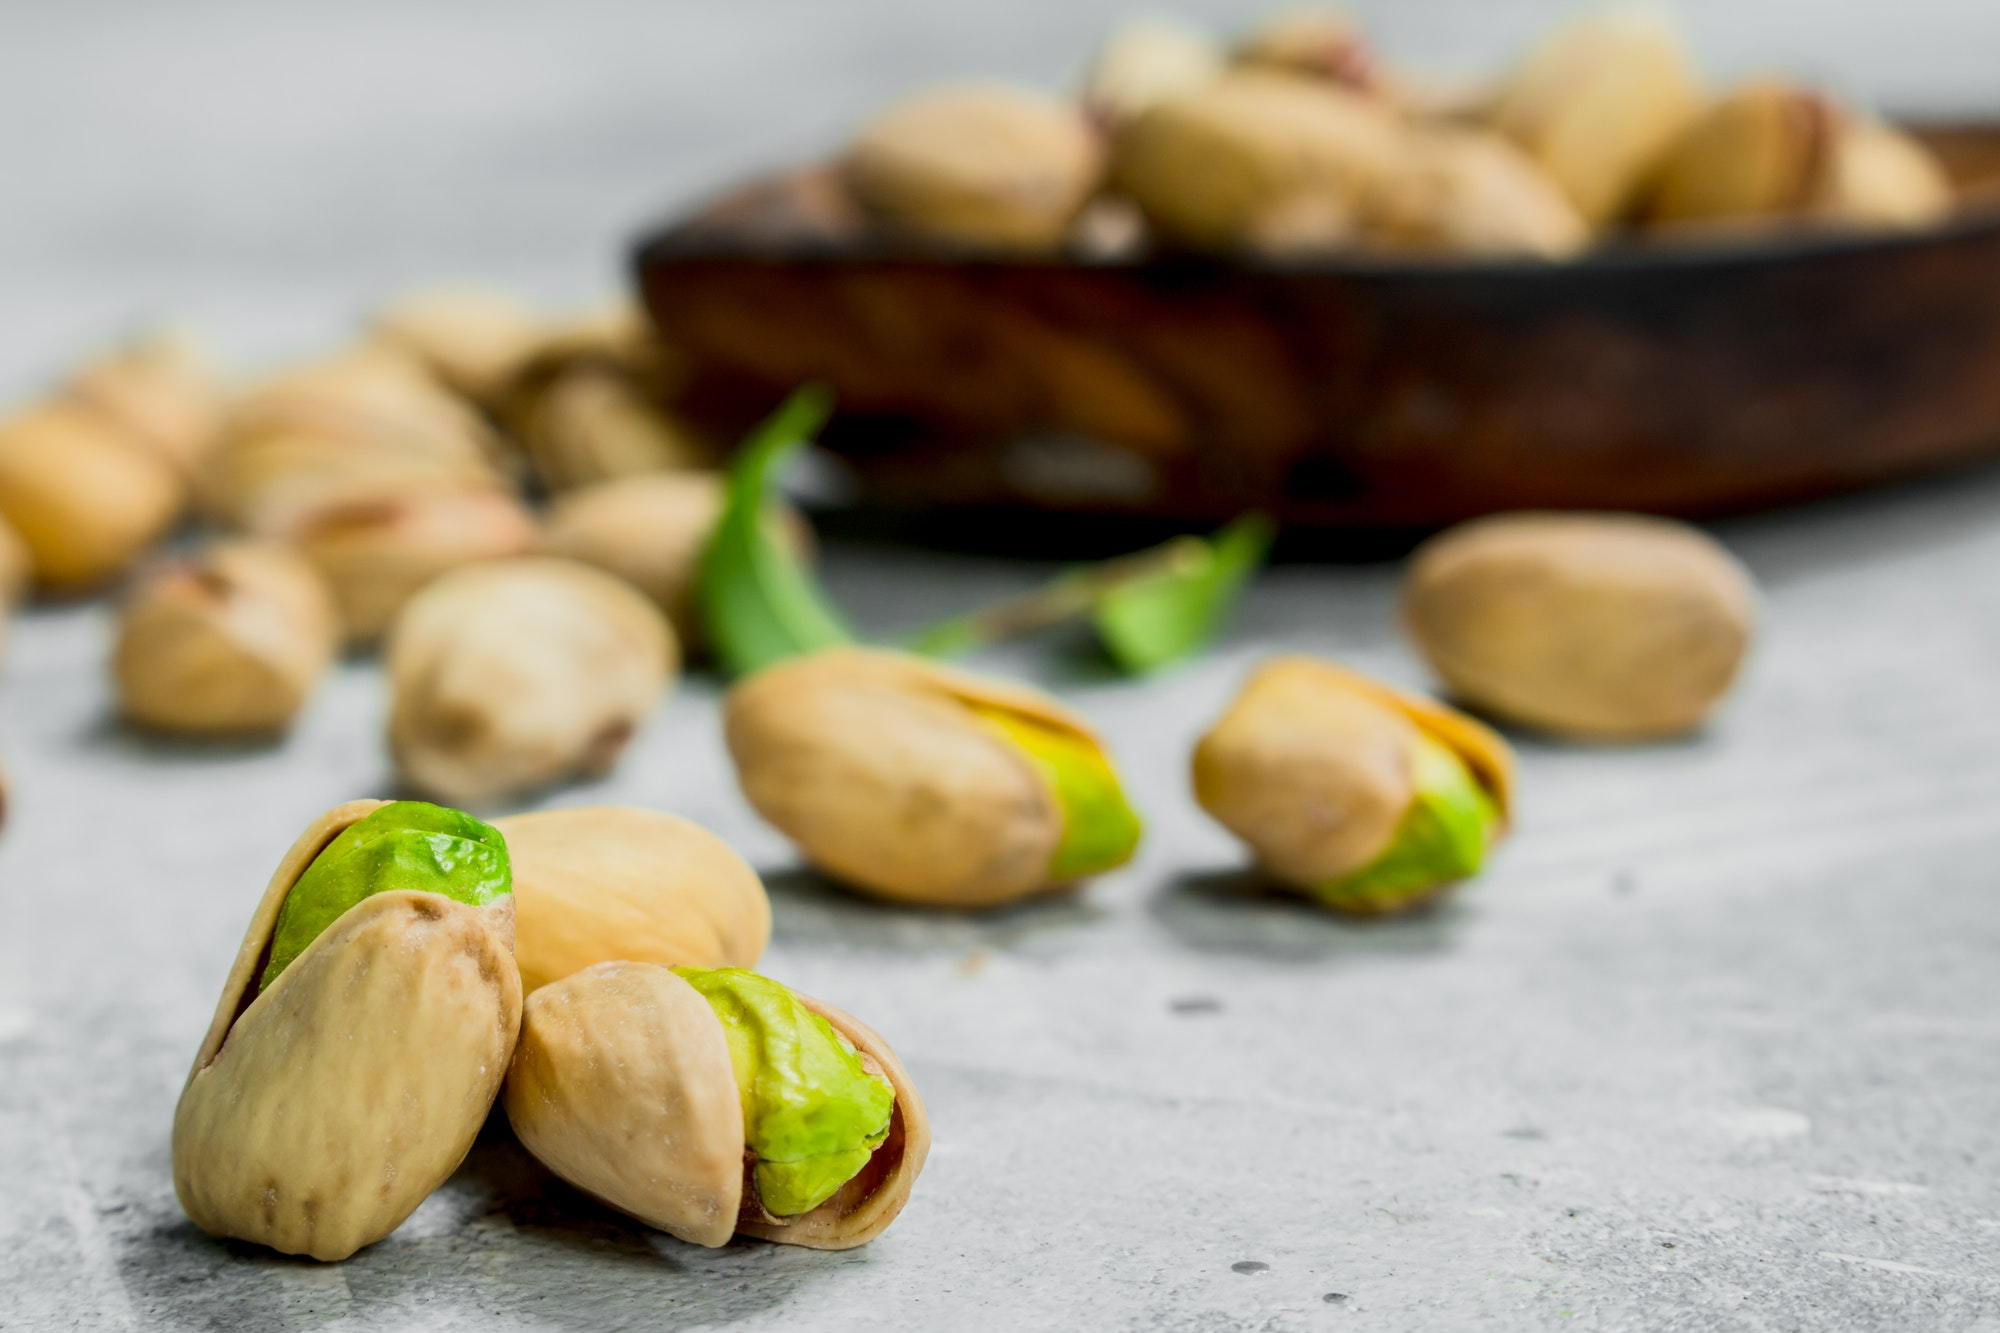 Pistachios with leaves.